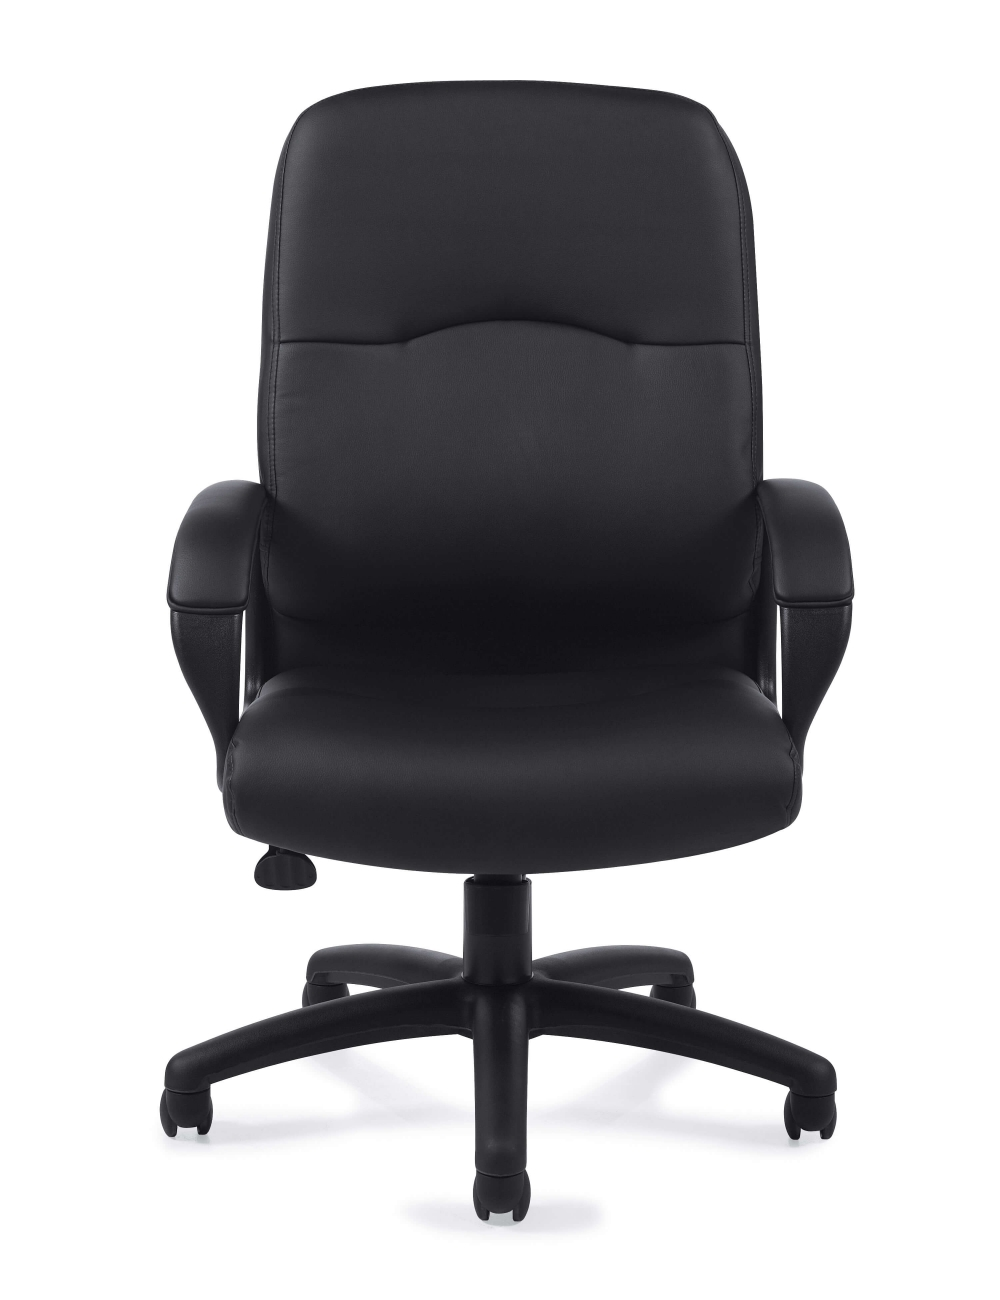 Leather office chair front view